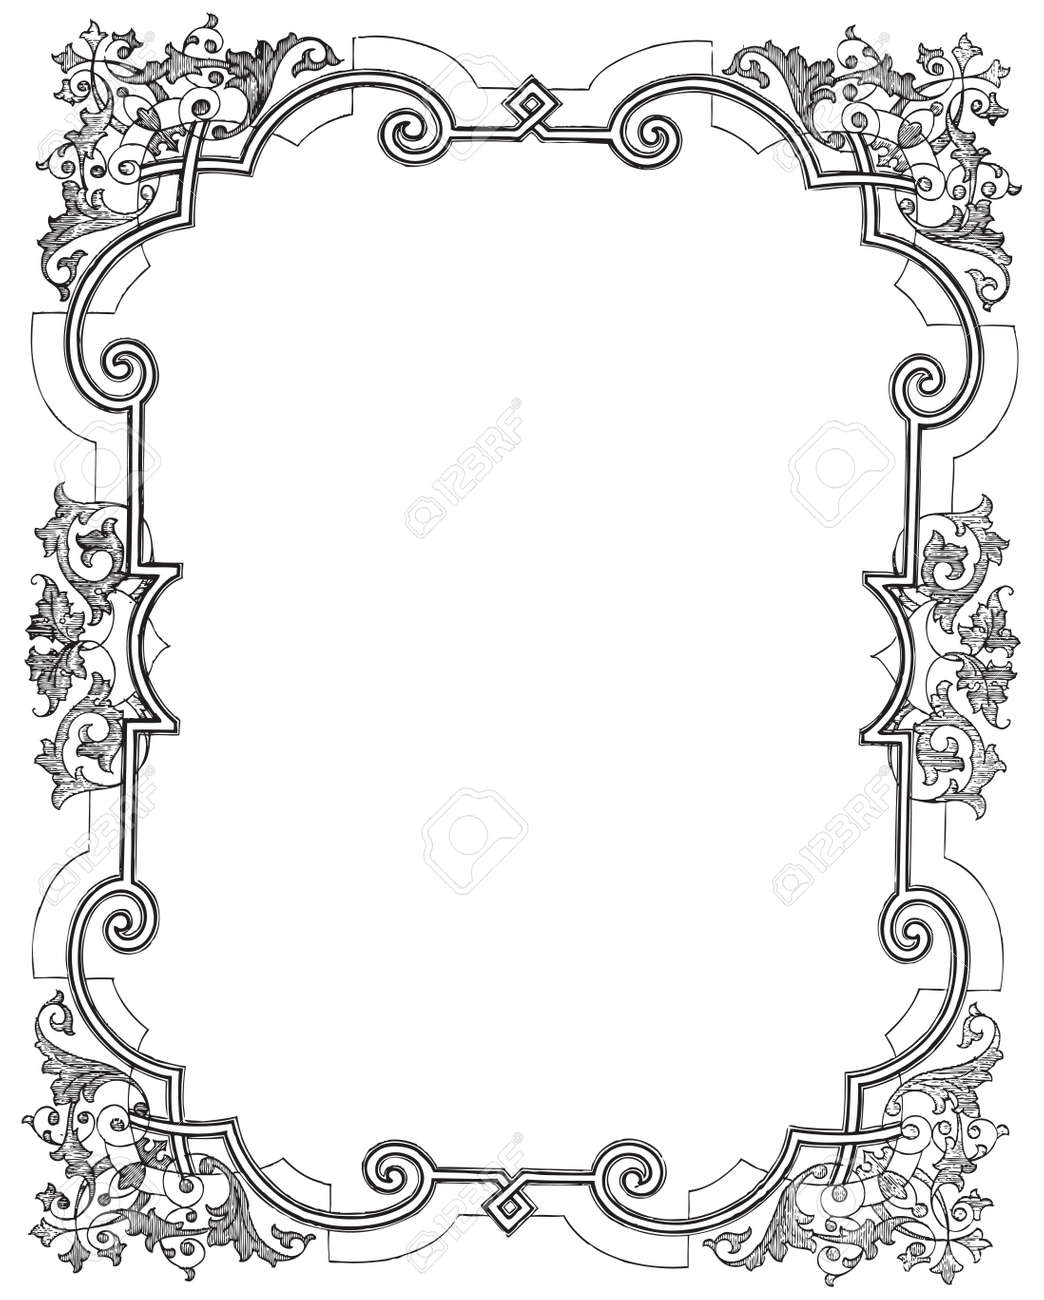 ancient style engraving of a vintage frame with floral decorations stock vector 31963788